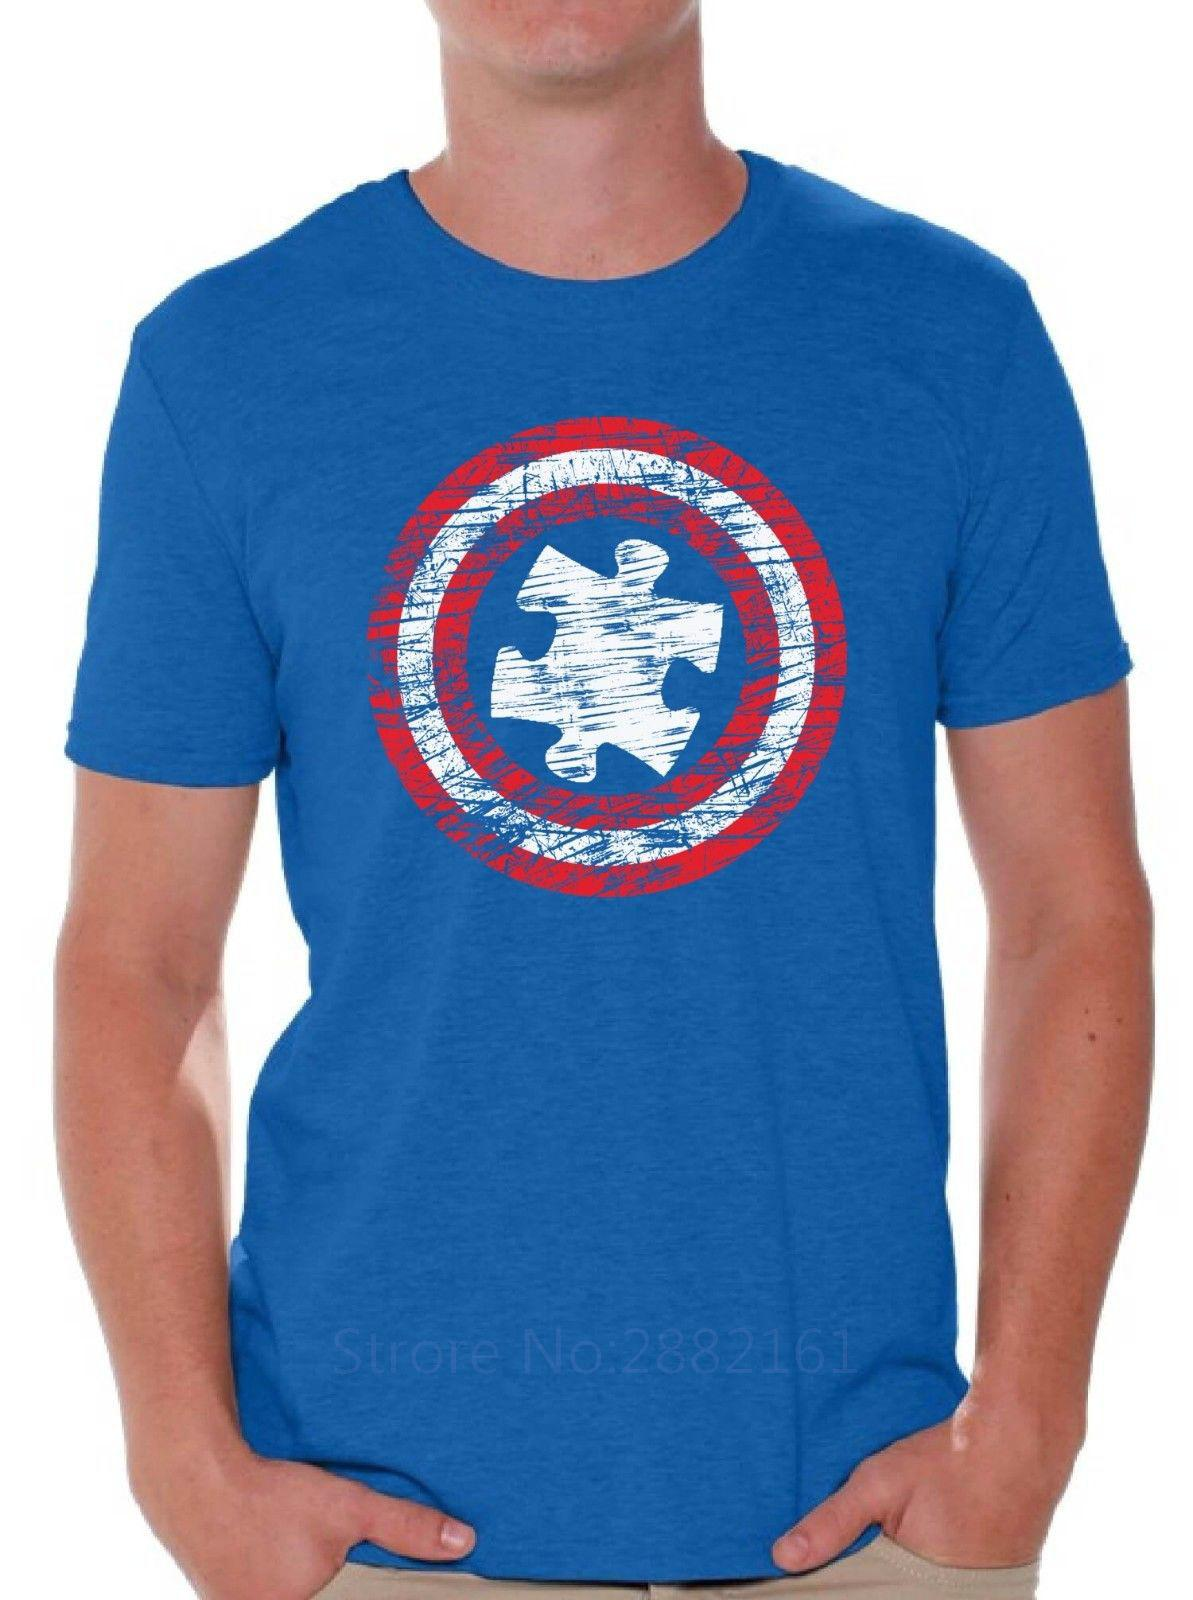 f3c90265f Autism Awareness T Shirt Autism Distressed Shield Puzzle Shirt Men High  Quality Tees Really Funny T Shirts Funny Vintage T Shirts From Beidhgate03,  ...